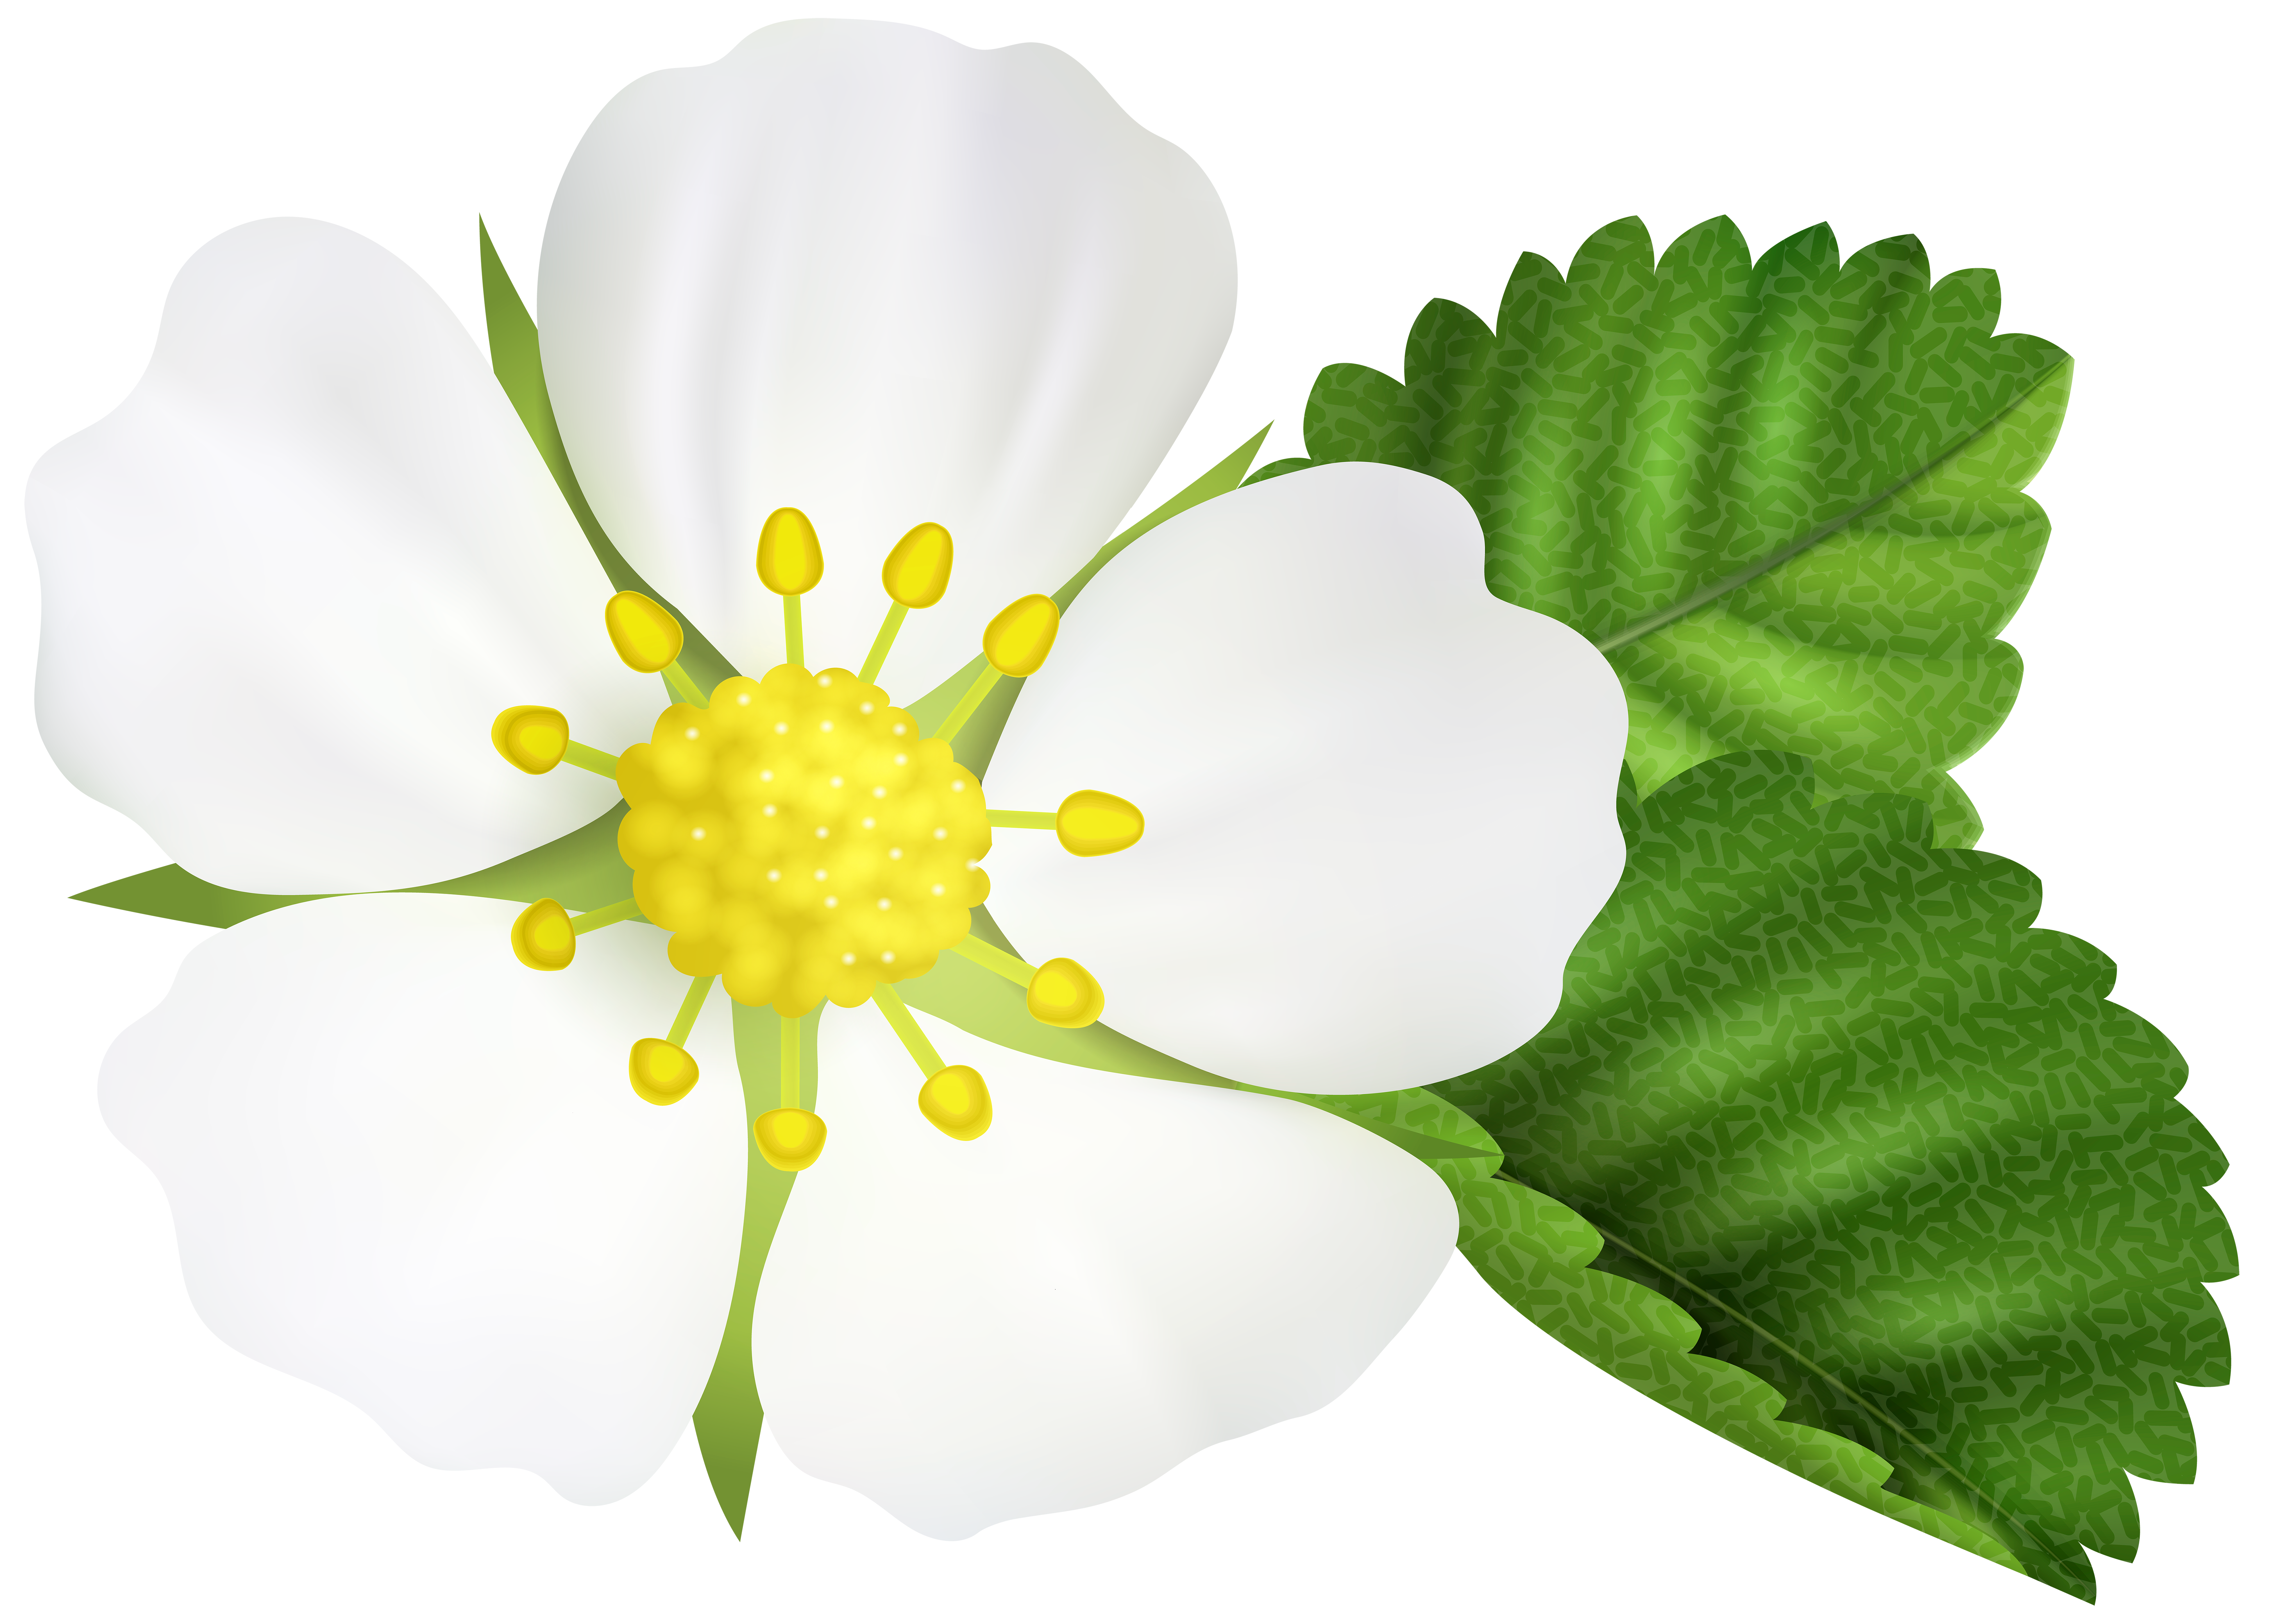 Strawberry flower clipart clip art royalty free Strawberry Flower PNG Clip Art Image | Gallery Yopriceville - High ... clip art royalty free